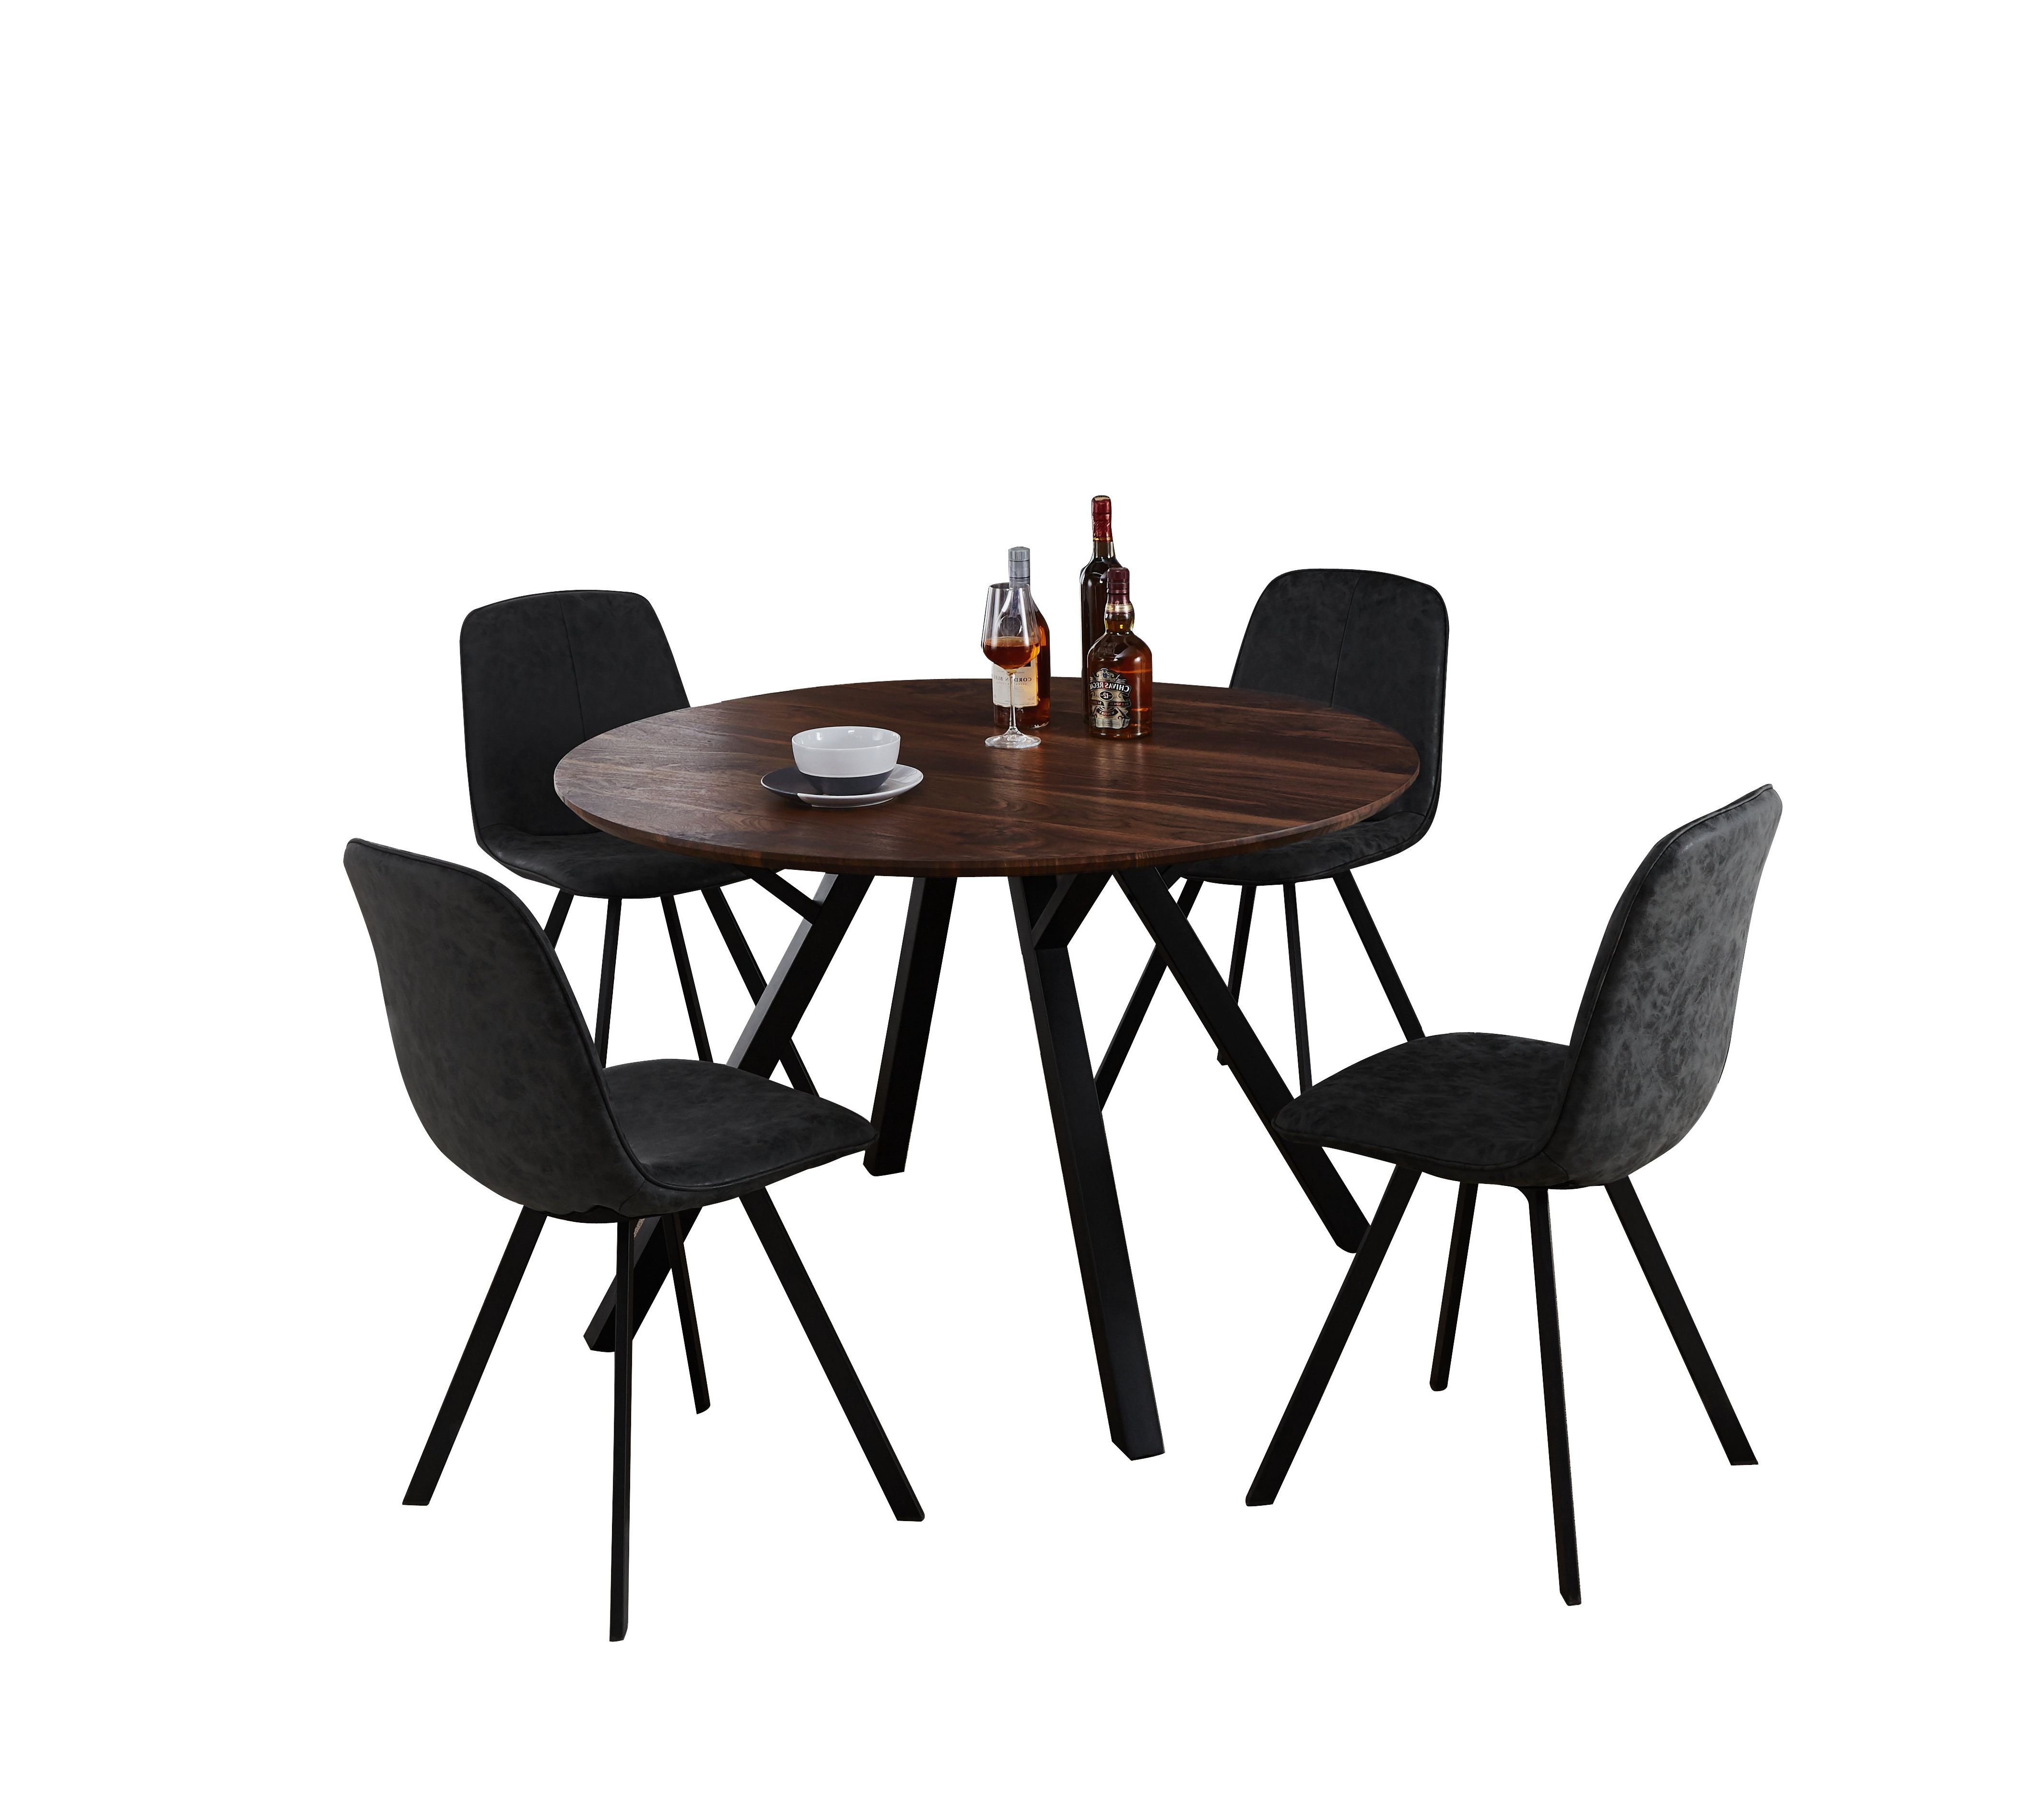 Williston Forge Malmo Design Round Table 5 Piece Solid Wood Dining Pertaining To Most Popular Wiggs 5 Piece Dining Sets (View 23 of 25)